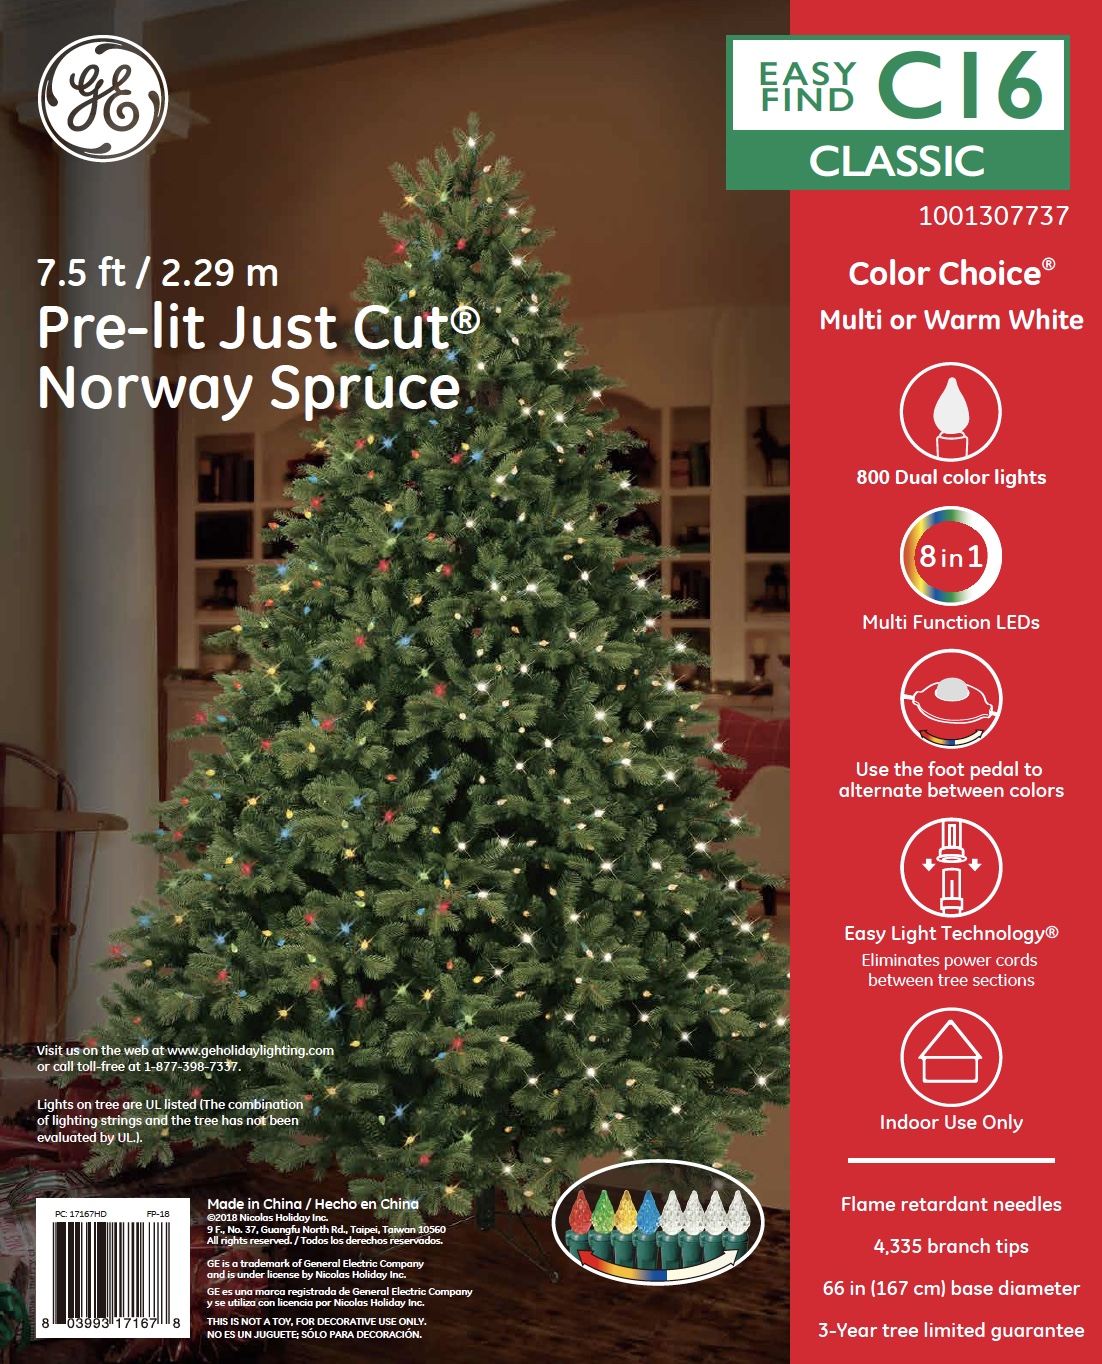 Ge Christmas Tree Lights.17167 Ge Just Cut Deluxe Norway Spruce 7 5 Ft Color